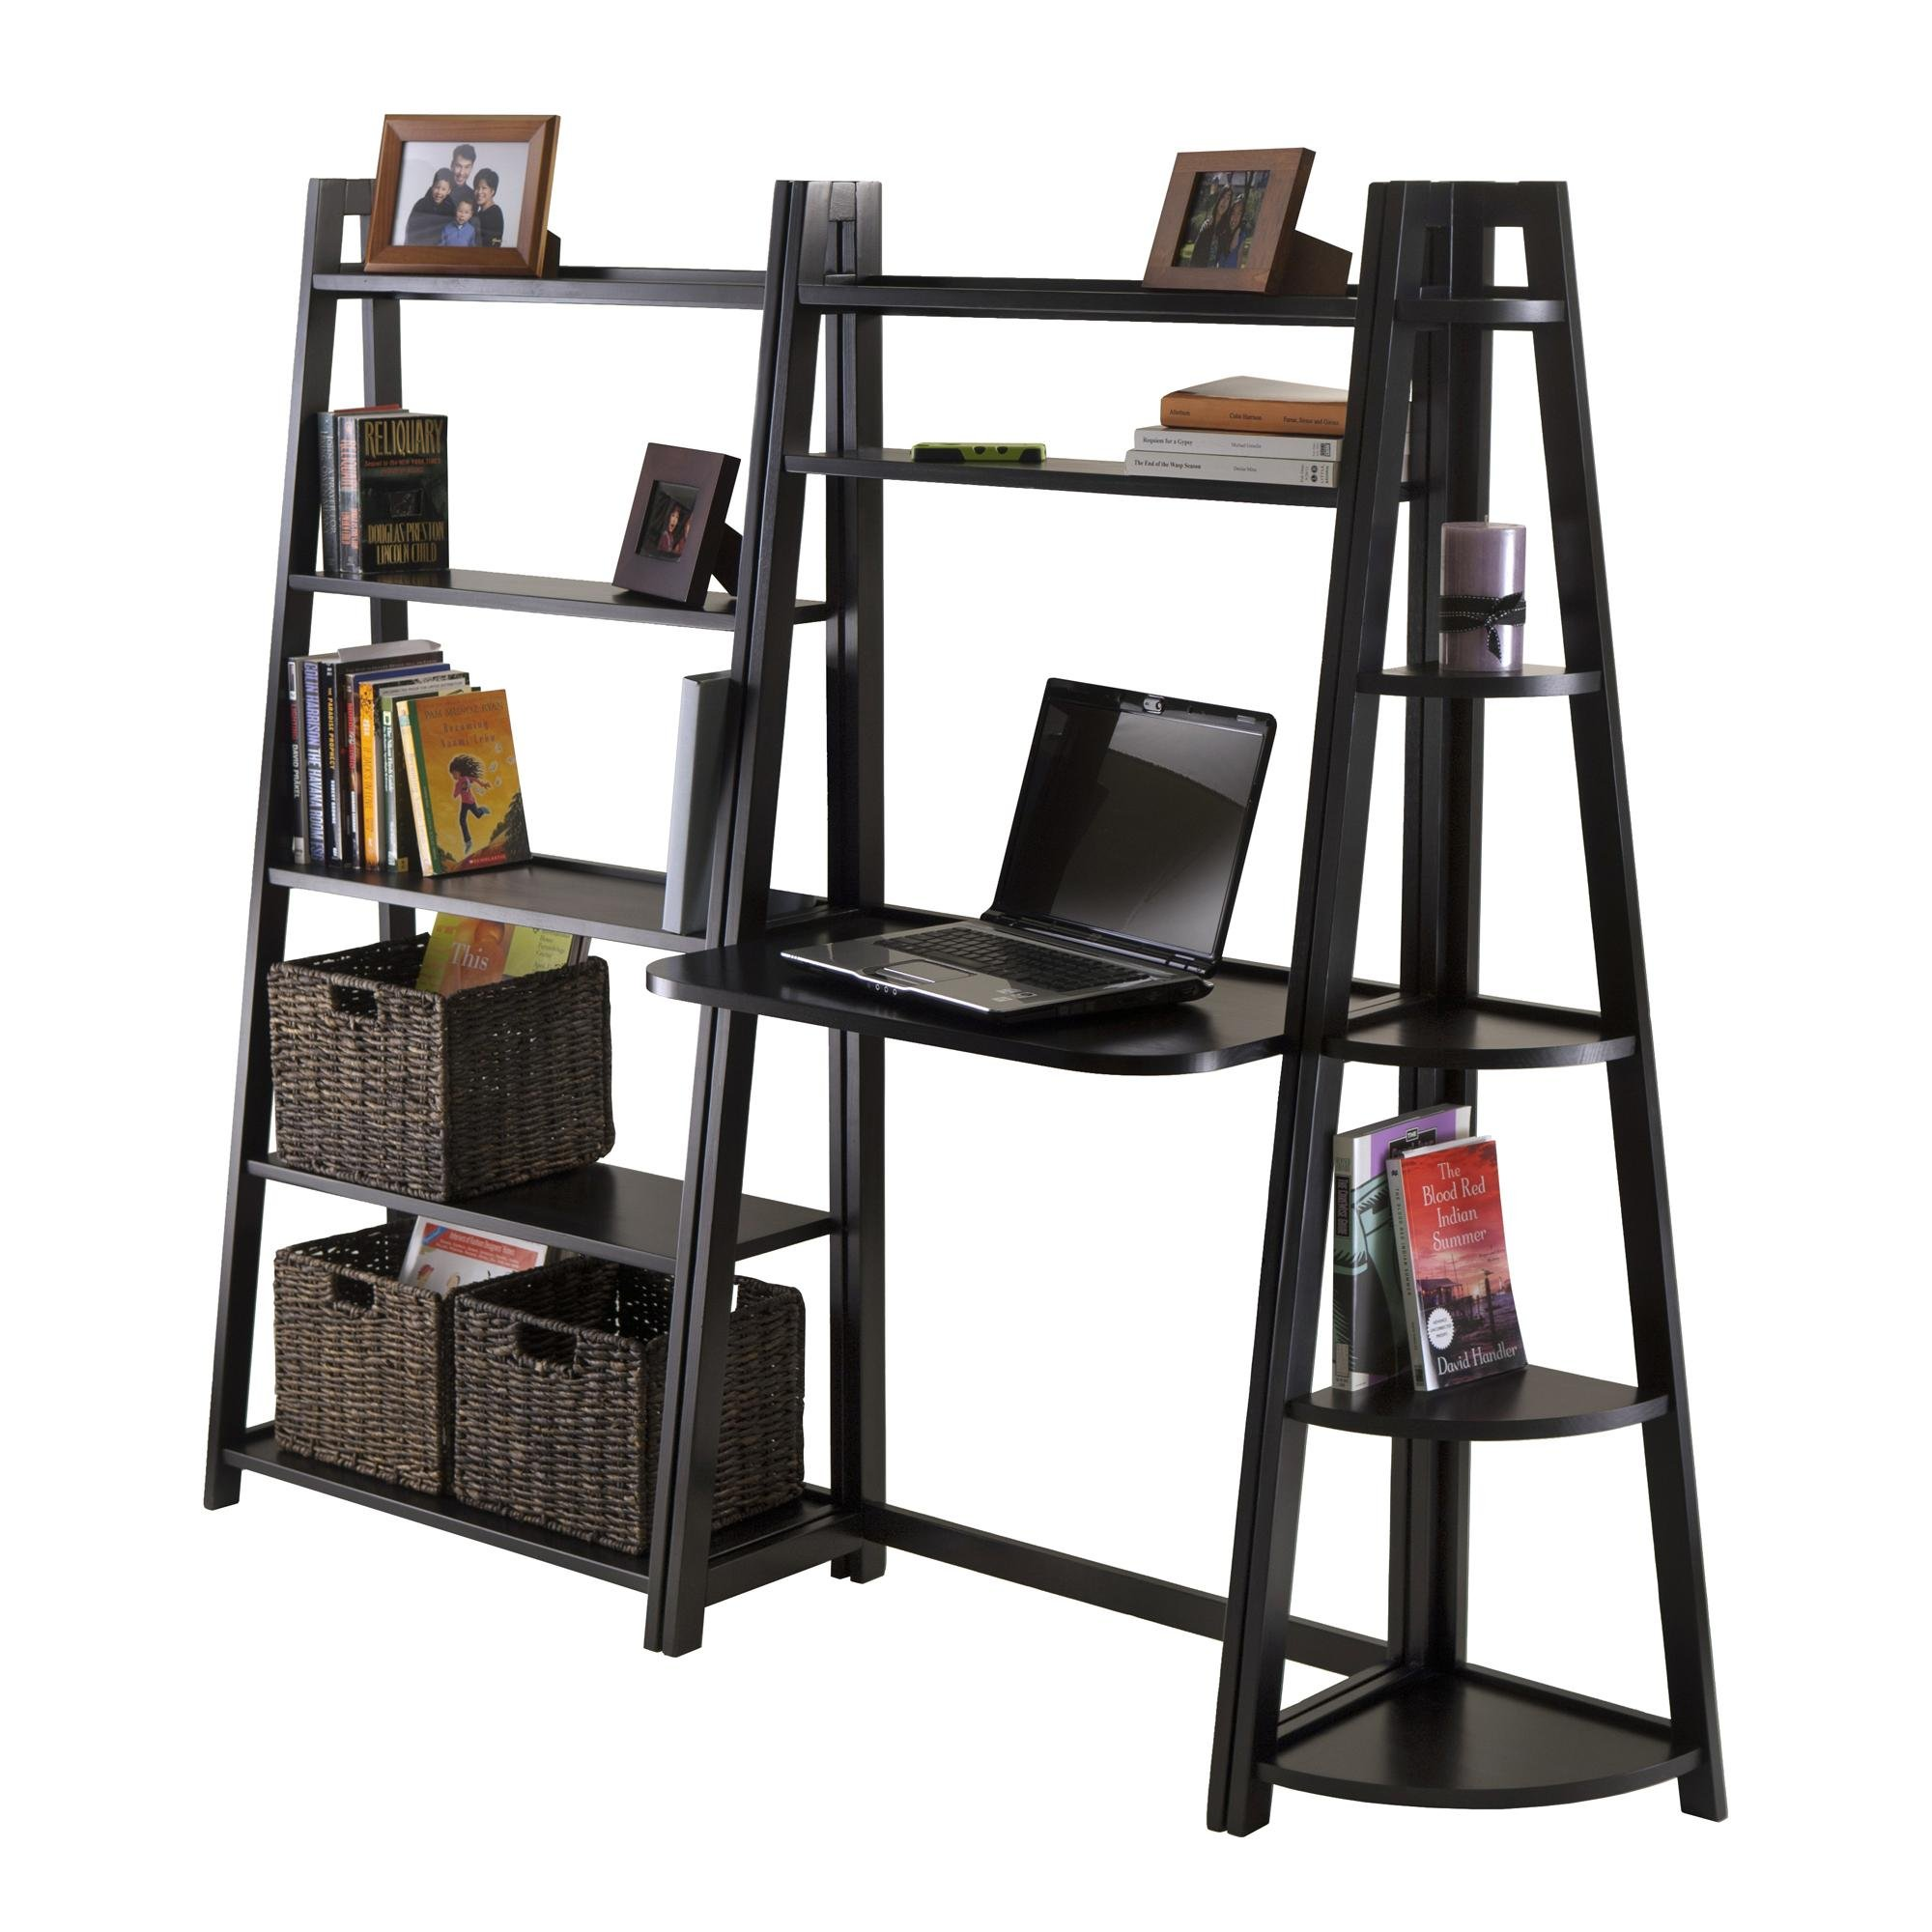 Winsome Wood 3-Piece Adam Desk Shelf Set with 5-Tier Shelf and Corner Shelf